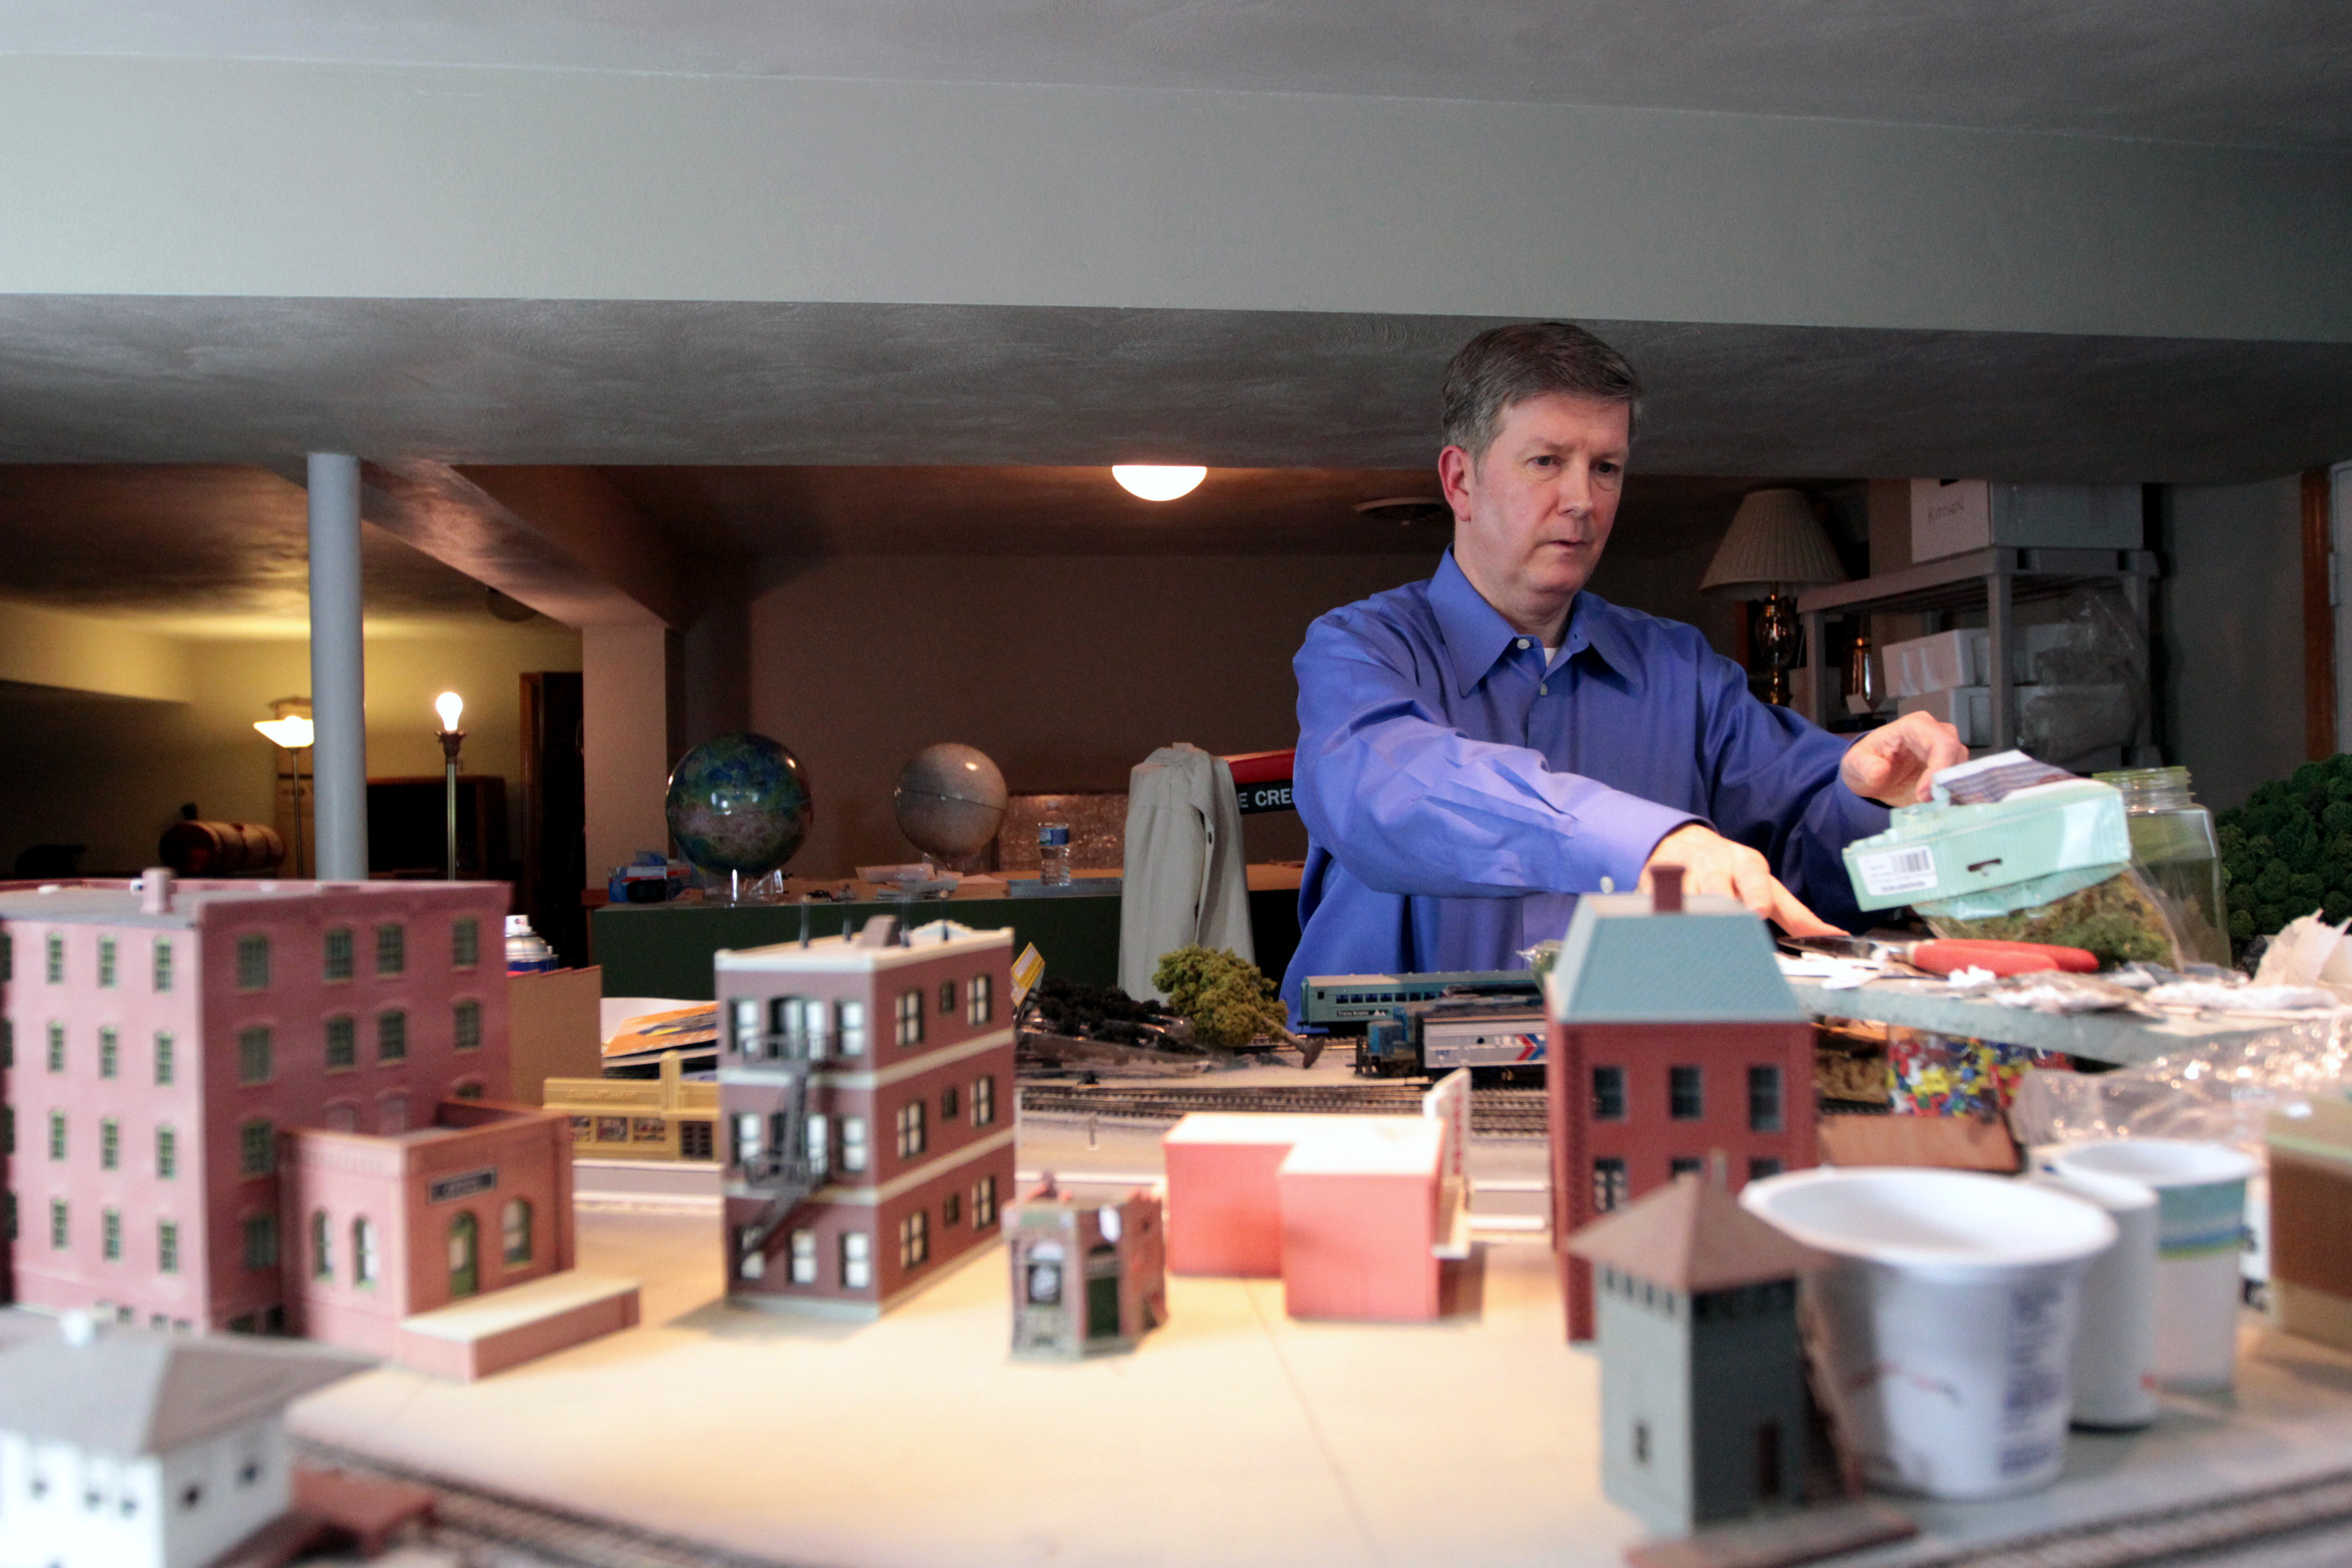 As a hobby, McDonnell works on his model railroad in the basement. Behind him are two globes of Venus and the moon, which he uses as reference maps for an online space exploration simulator. Photo by Eric Krupke/PBS NewsHour